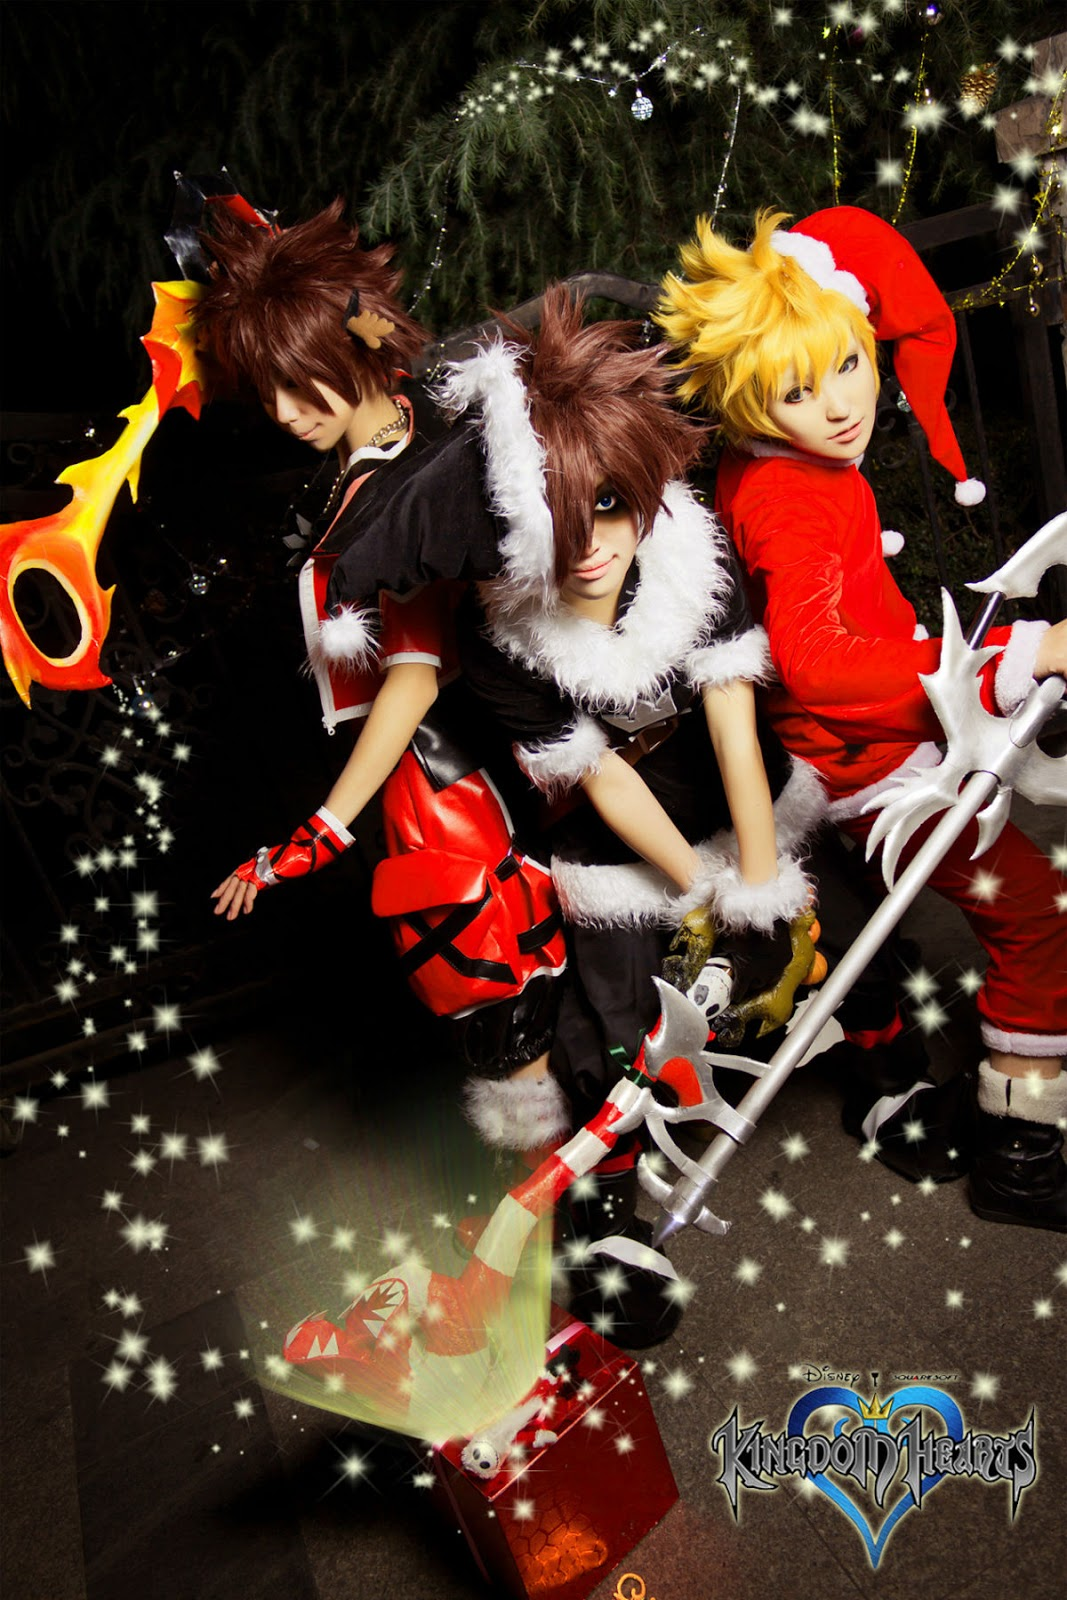 Final Fantasy Cosplay Costumes: Kingdom Hearts Cosplay for Christmas ...